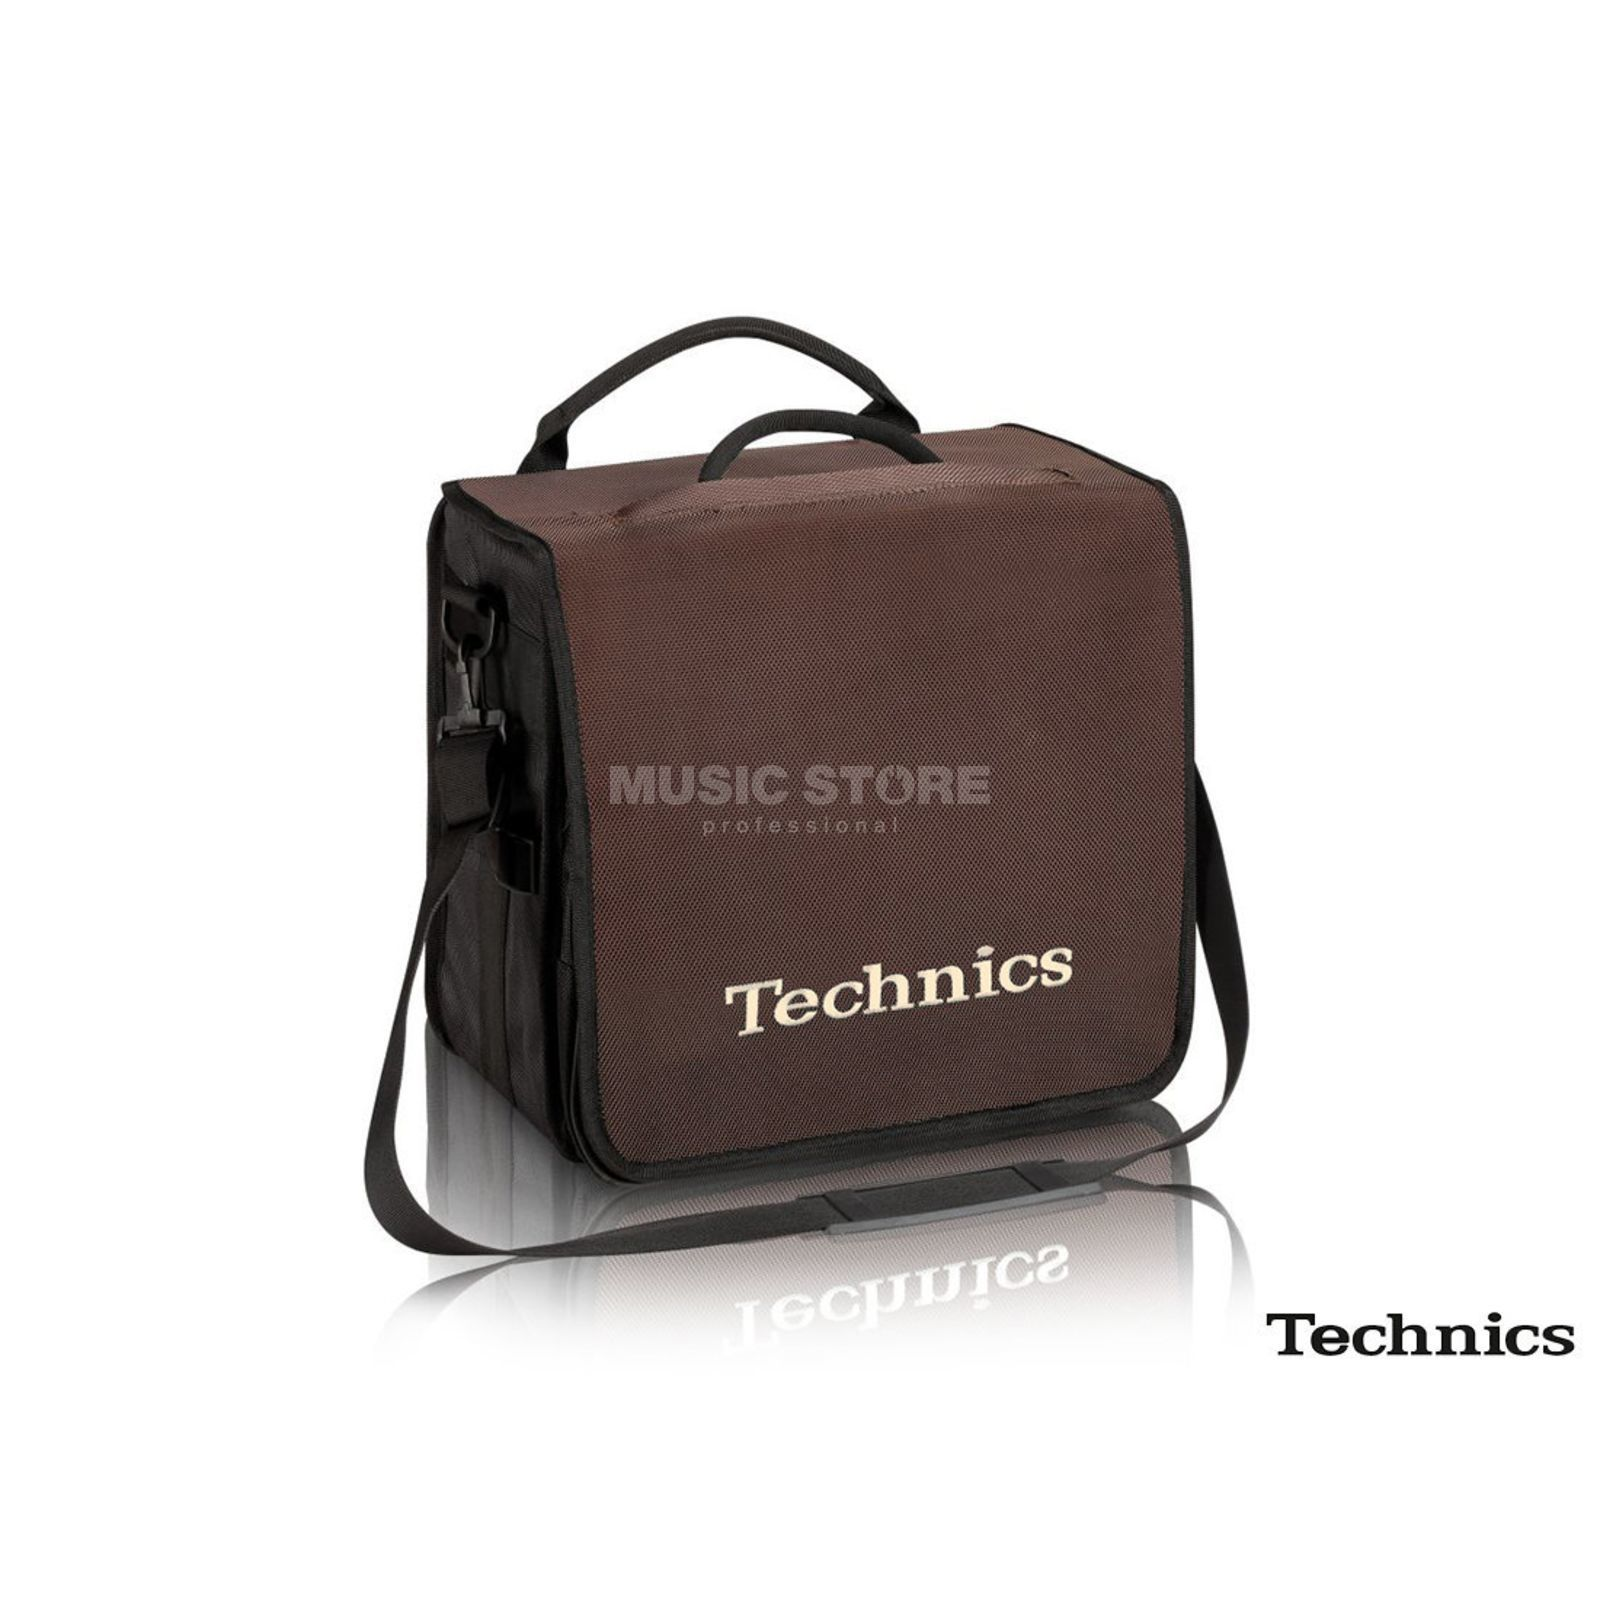 Technics BackBag braun-beige  Produktbild